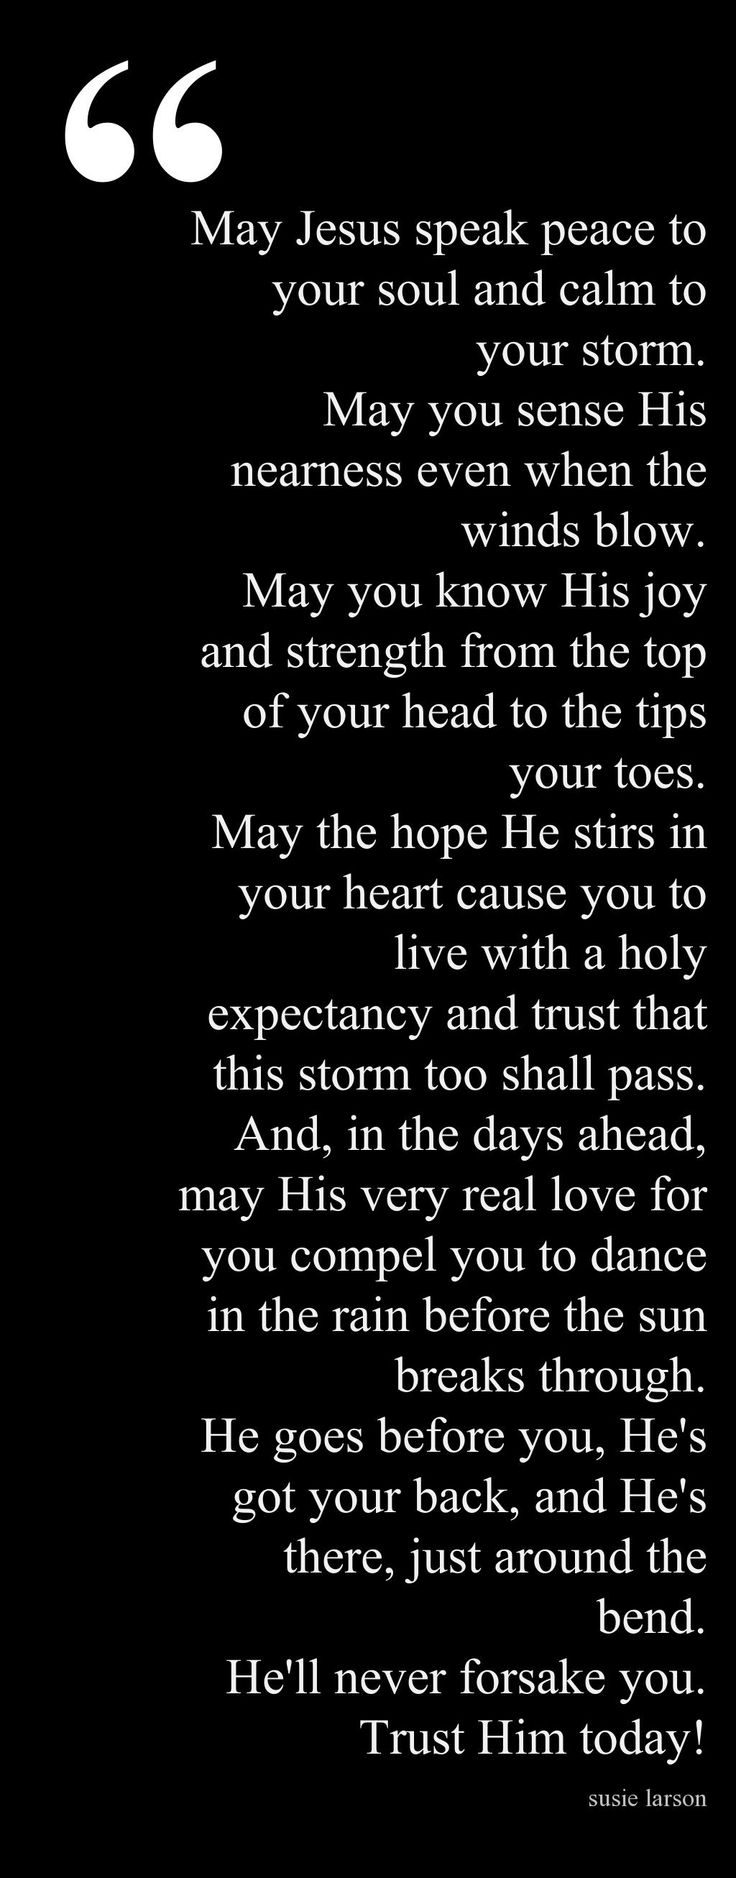 Start a Day Blessing When your burden seems great, remember the greatest battles are won while on our knees.  Love, Momma